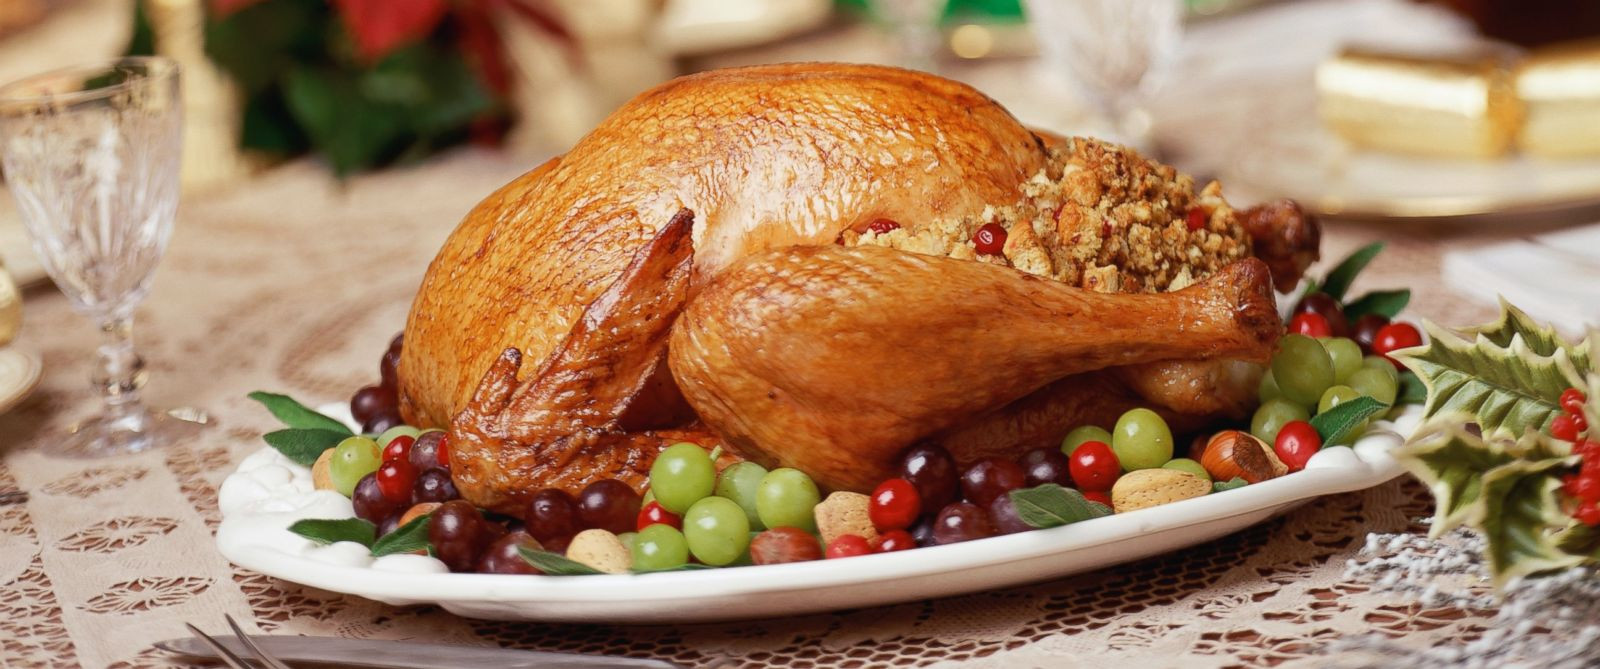 Thanksgiving Turkey Prices  Turkey Prices Expected to Rise 15 to 20 Percent This